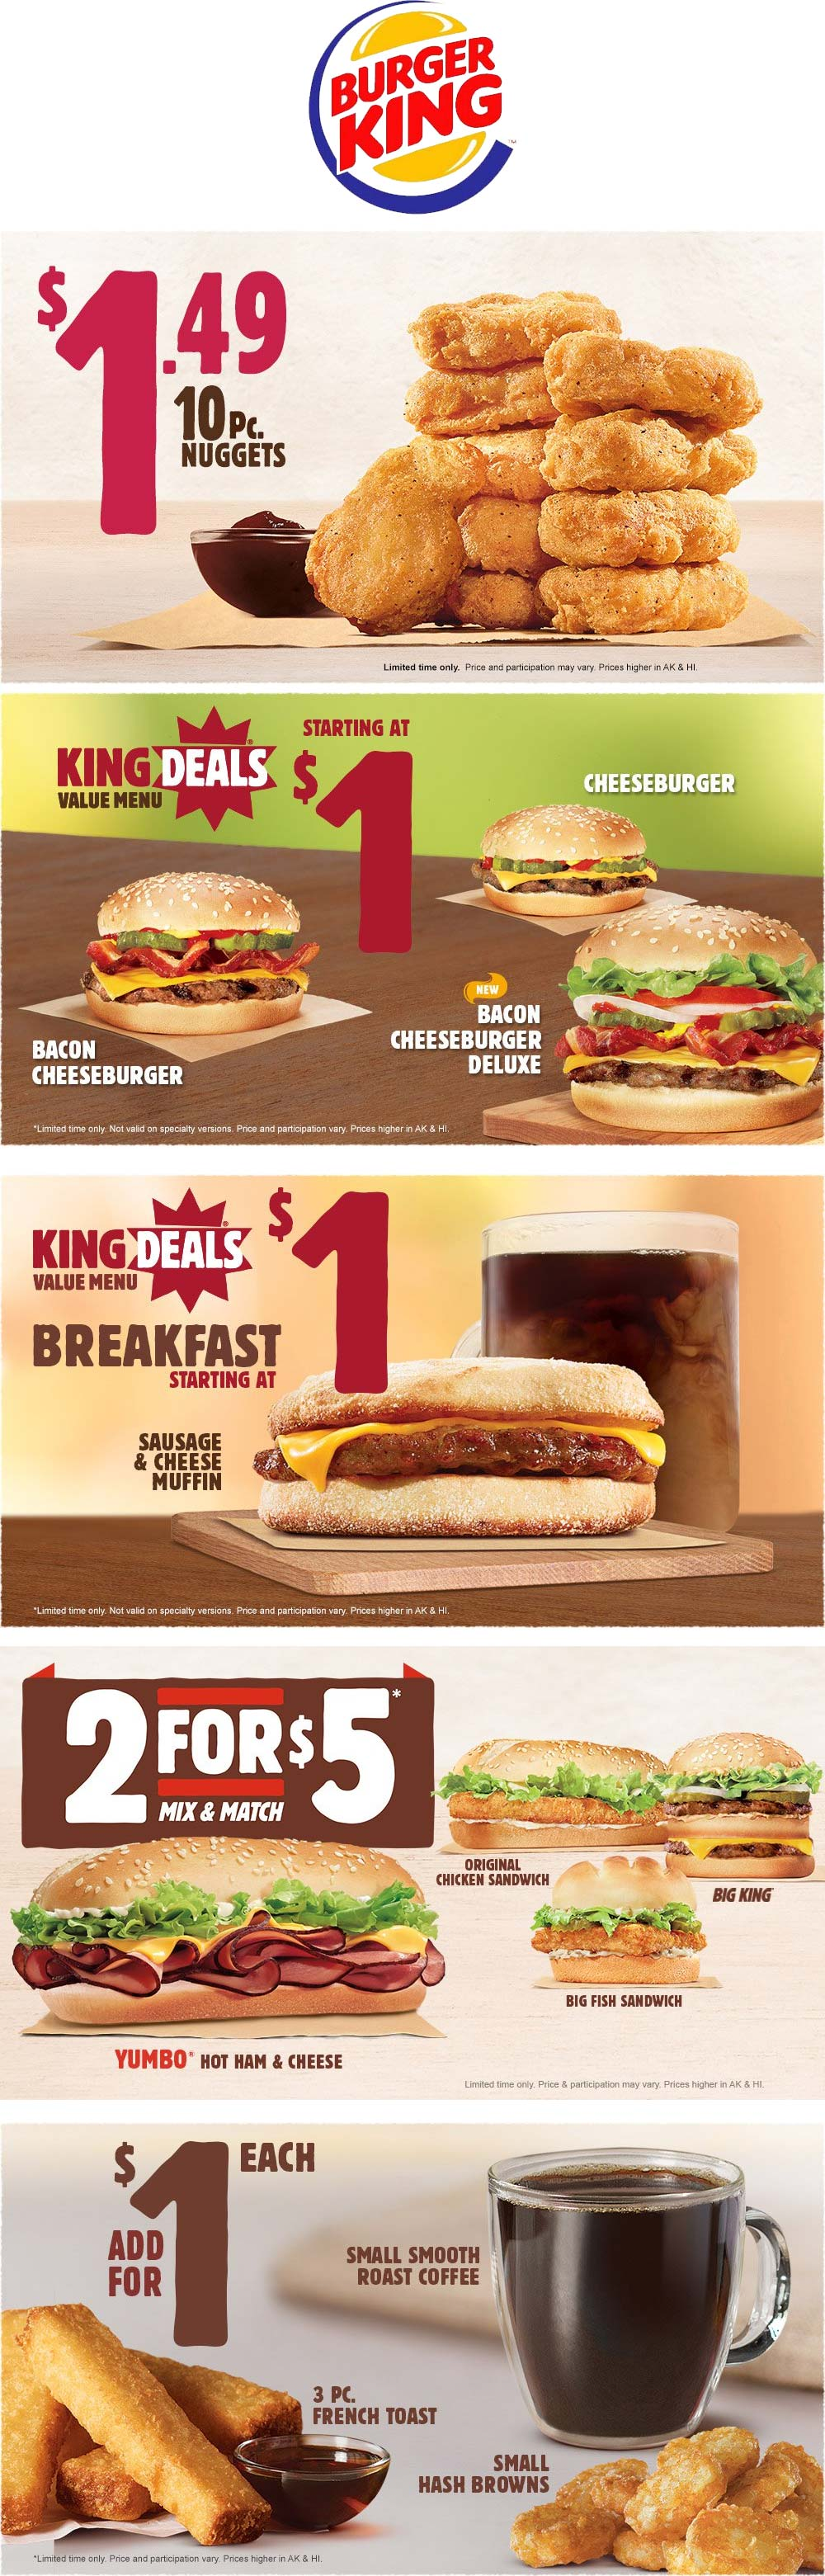 Burger King Coupon November 2018 10pc nuggets $1.49 & more going on at Burger King